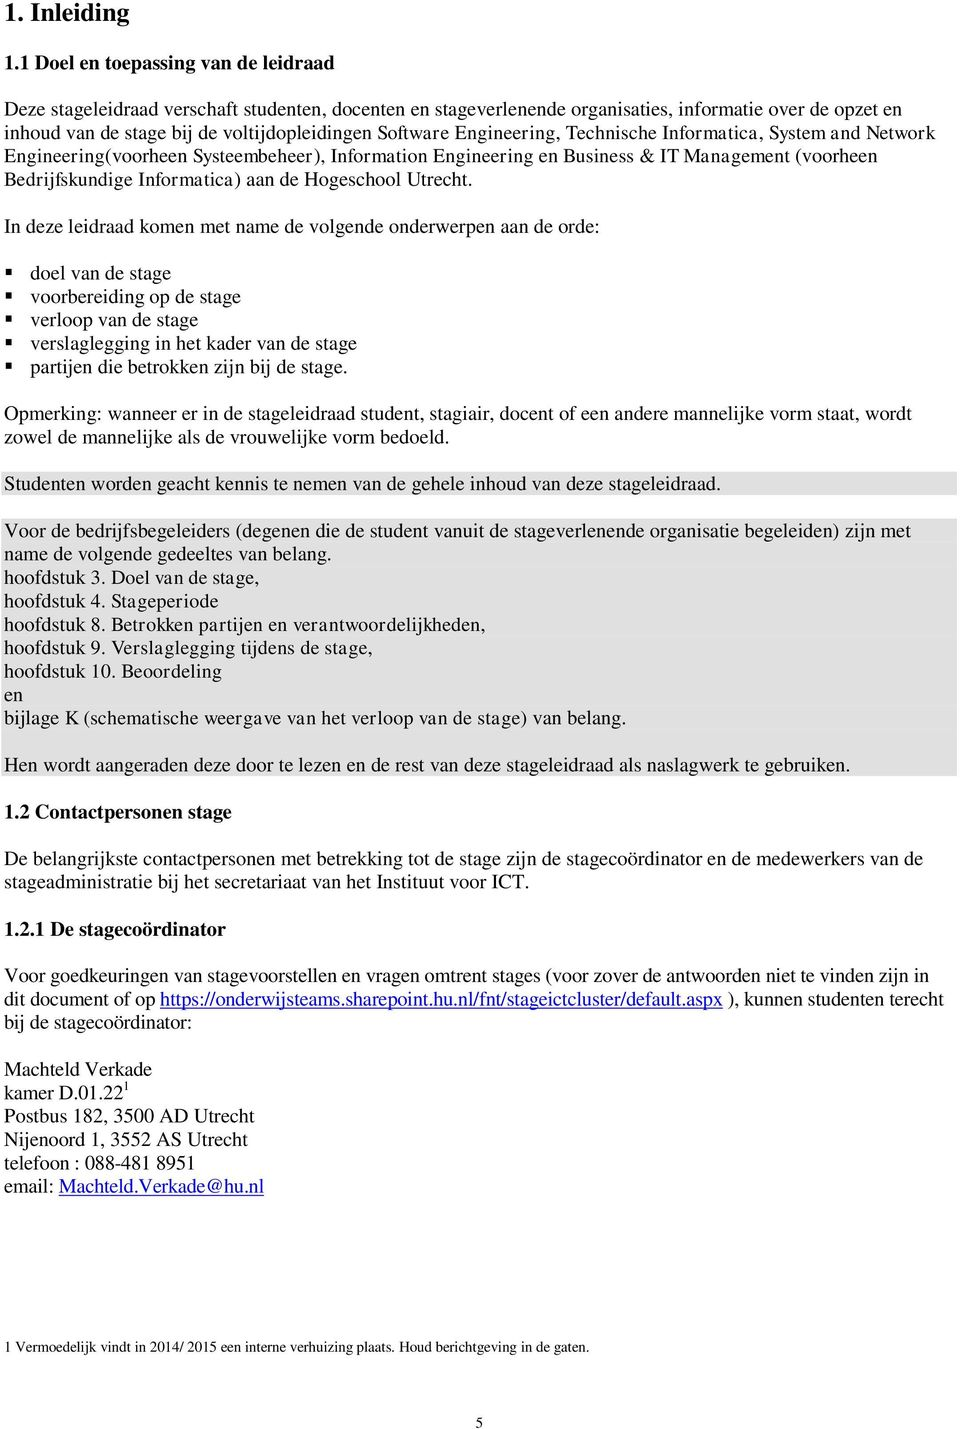 Software Engineering, Technische Informatica, System and Network Engineering(voorheen Systeembeheer), Information Engineering en Business & IT Management (voorheen Bedrijfskundige Informatica) aan de